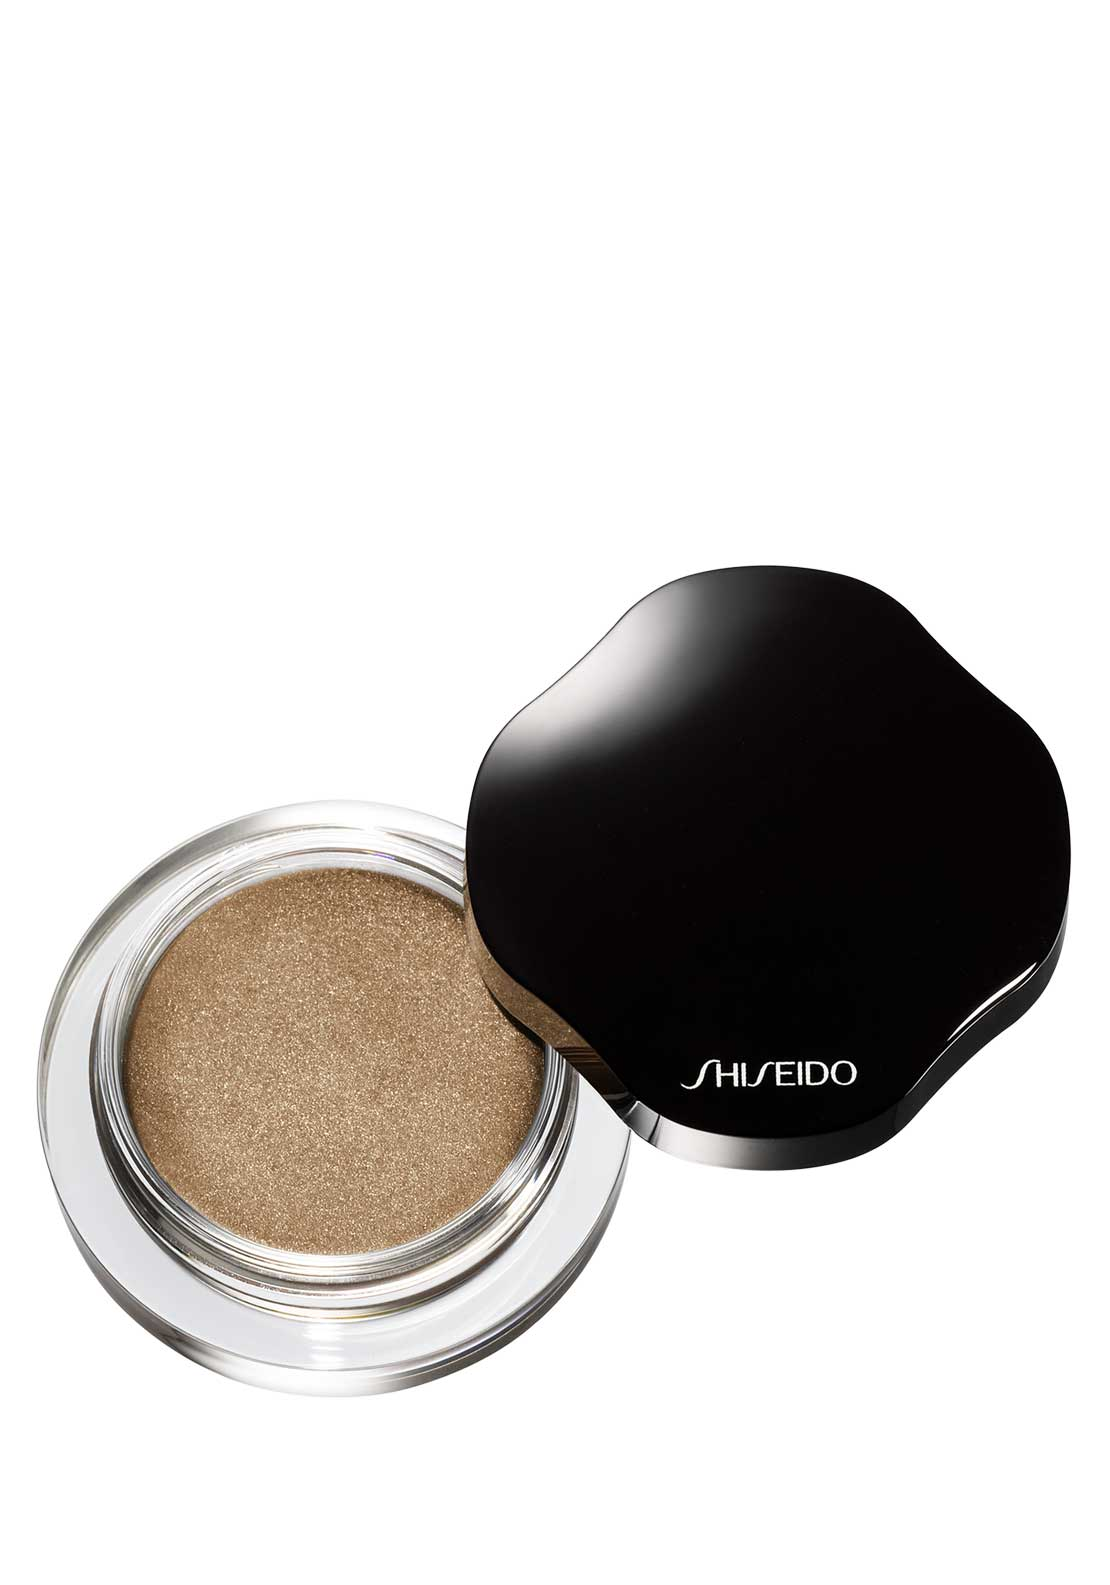 Shiseido Shimmering Cream Eye Shadow, BE728 Clay